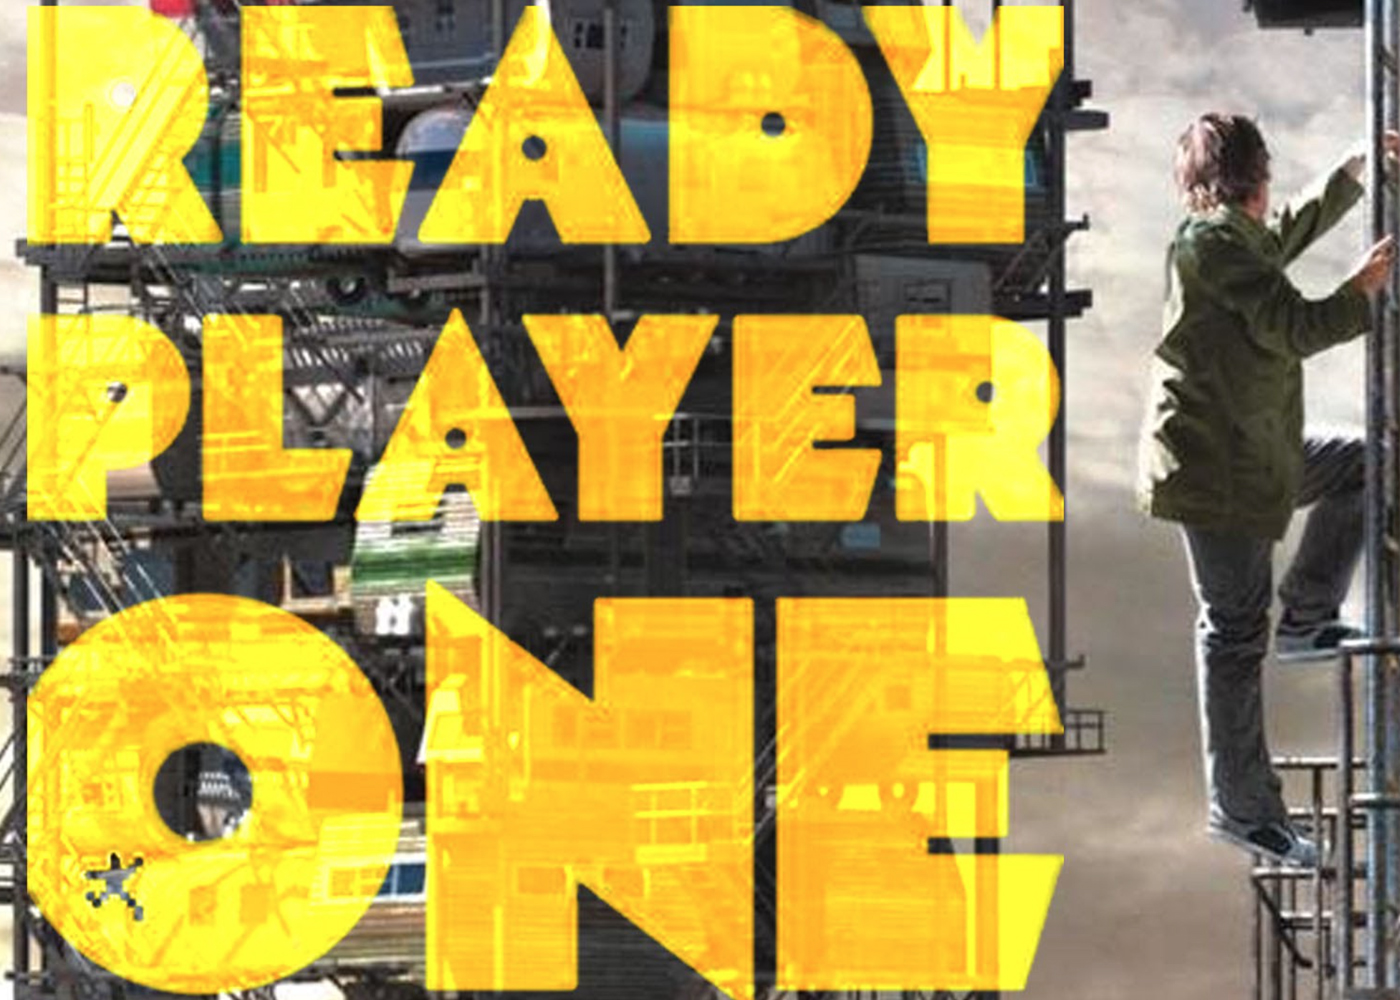 Hunt for Easter Eggs in Ready Player One's First Official Image